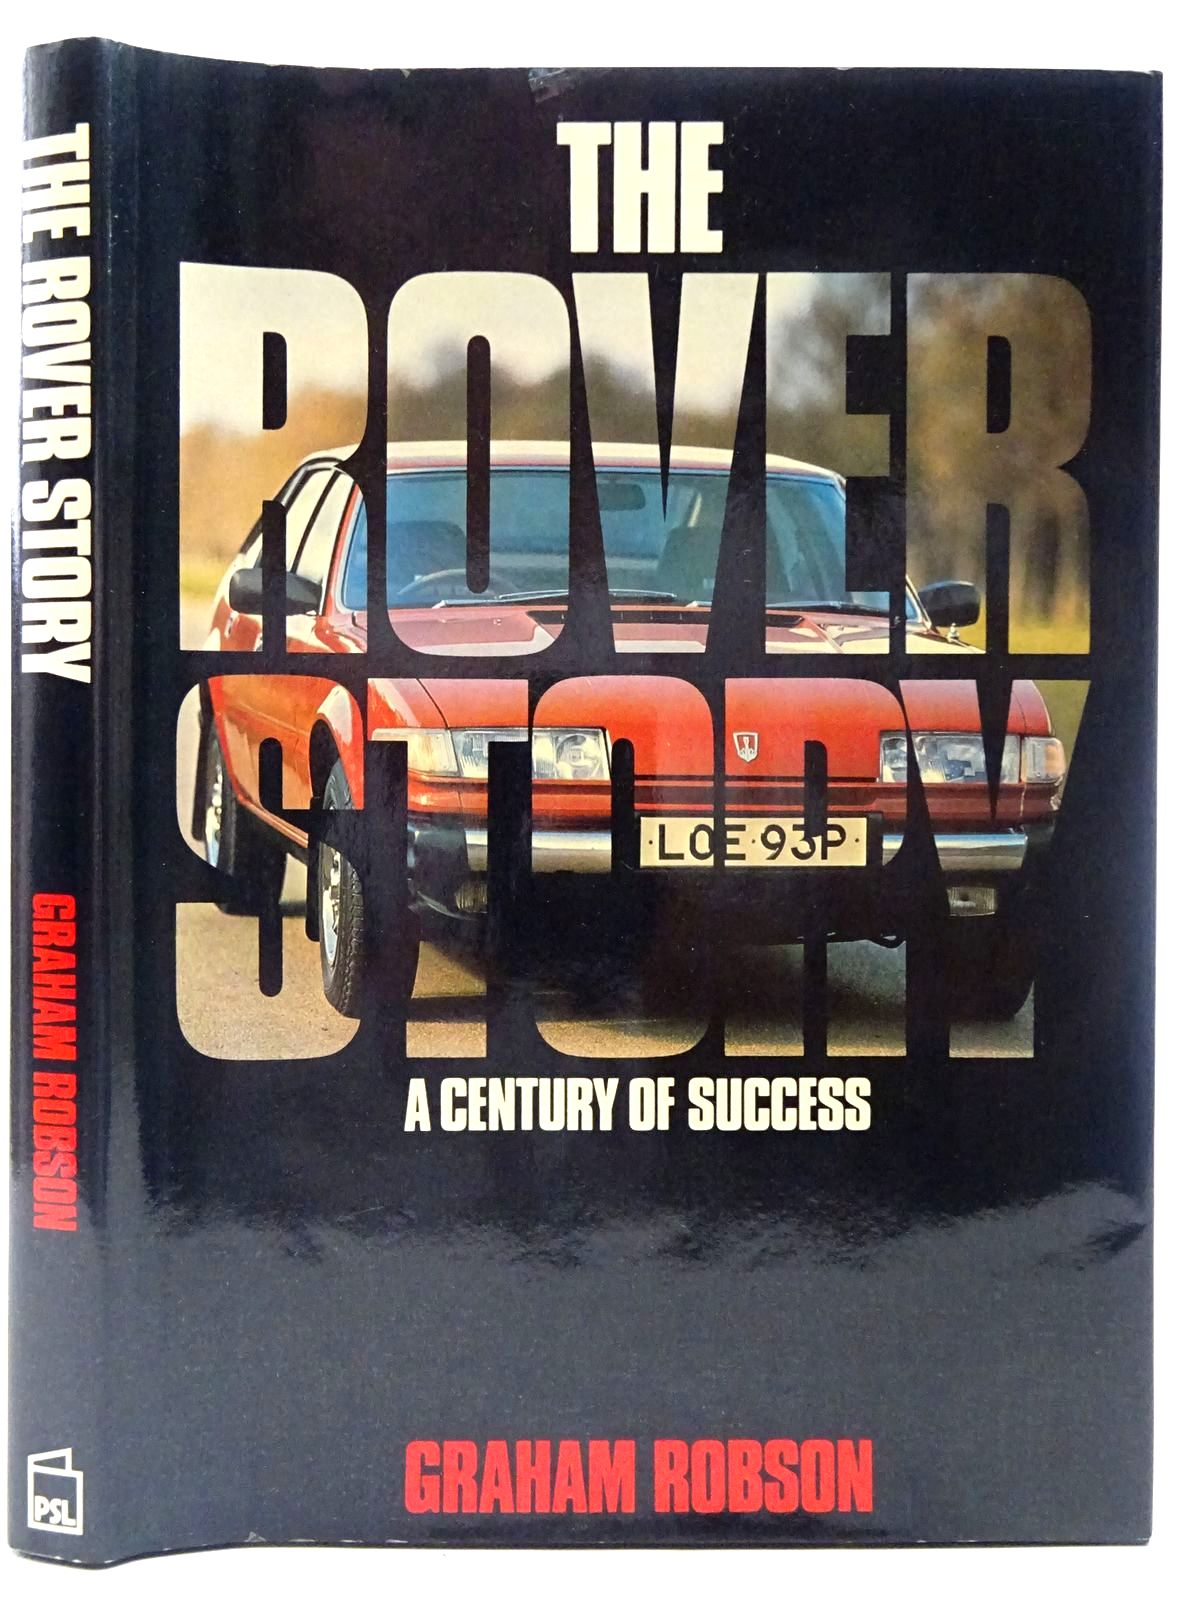 Photo of THE ROVER STORY A CENTURY OF SUCCESS written by Robson, Graham published by Patrick Stephens Limited (STOCK CODE: 2126855)  for sale by Stella & Rose's Books